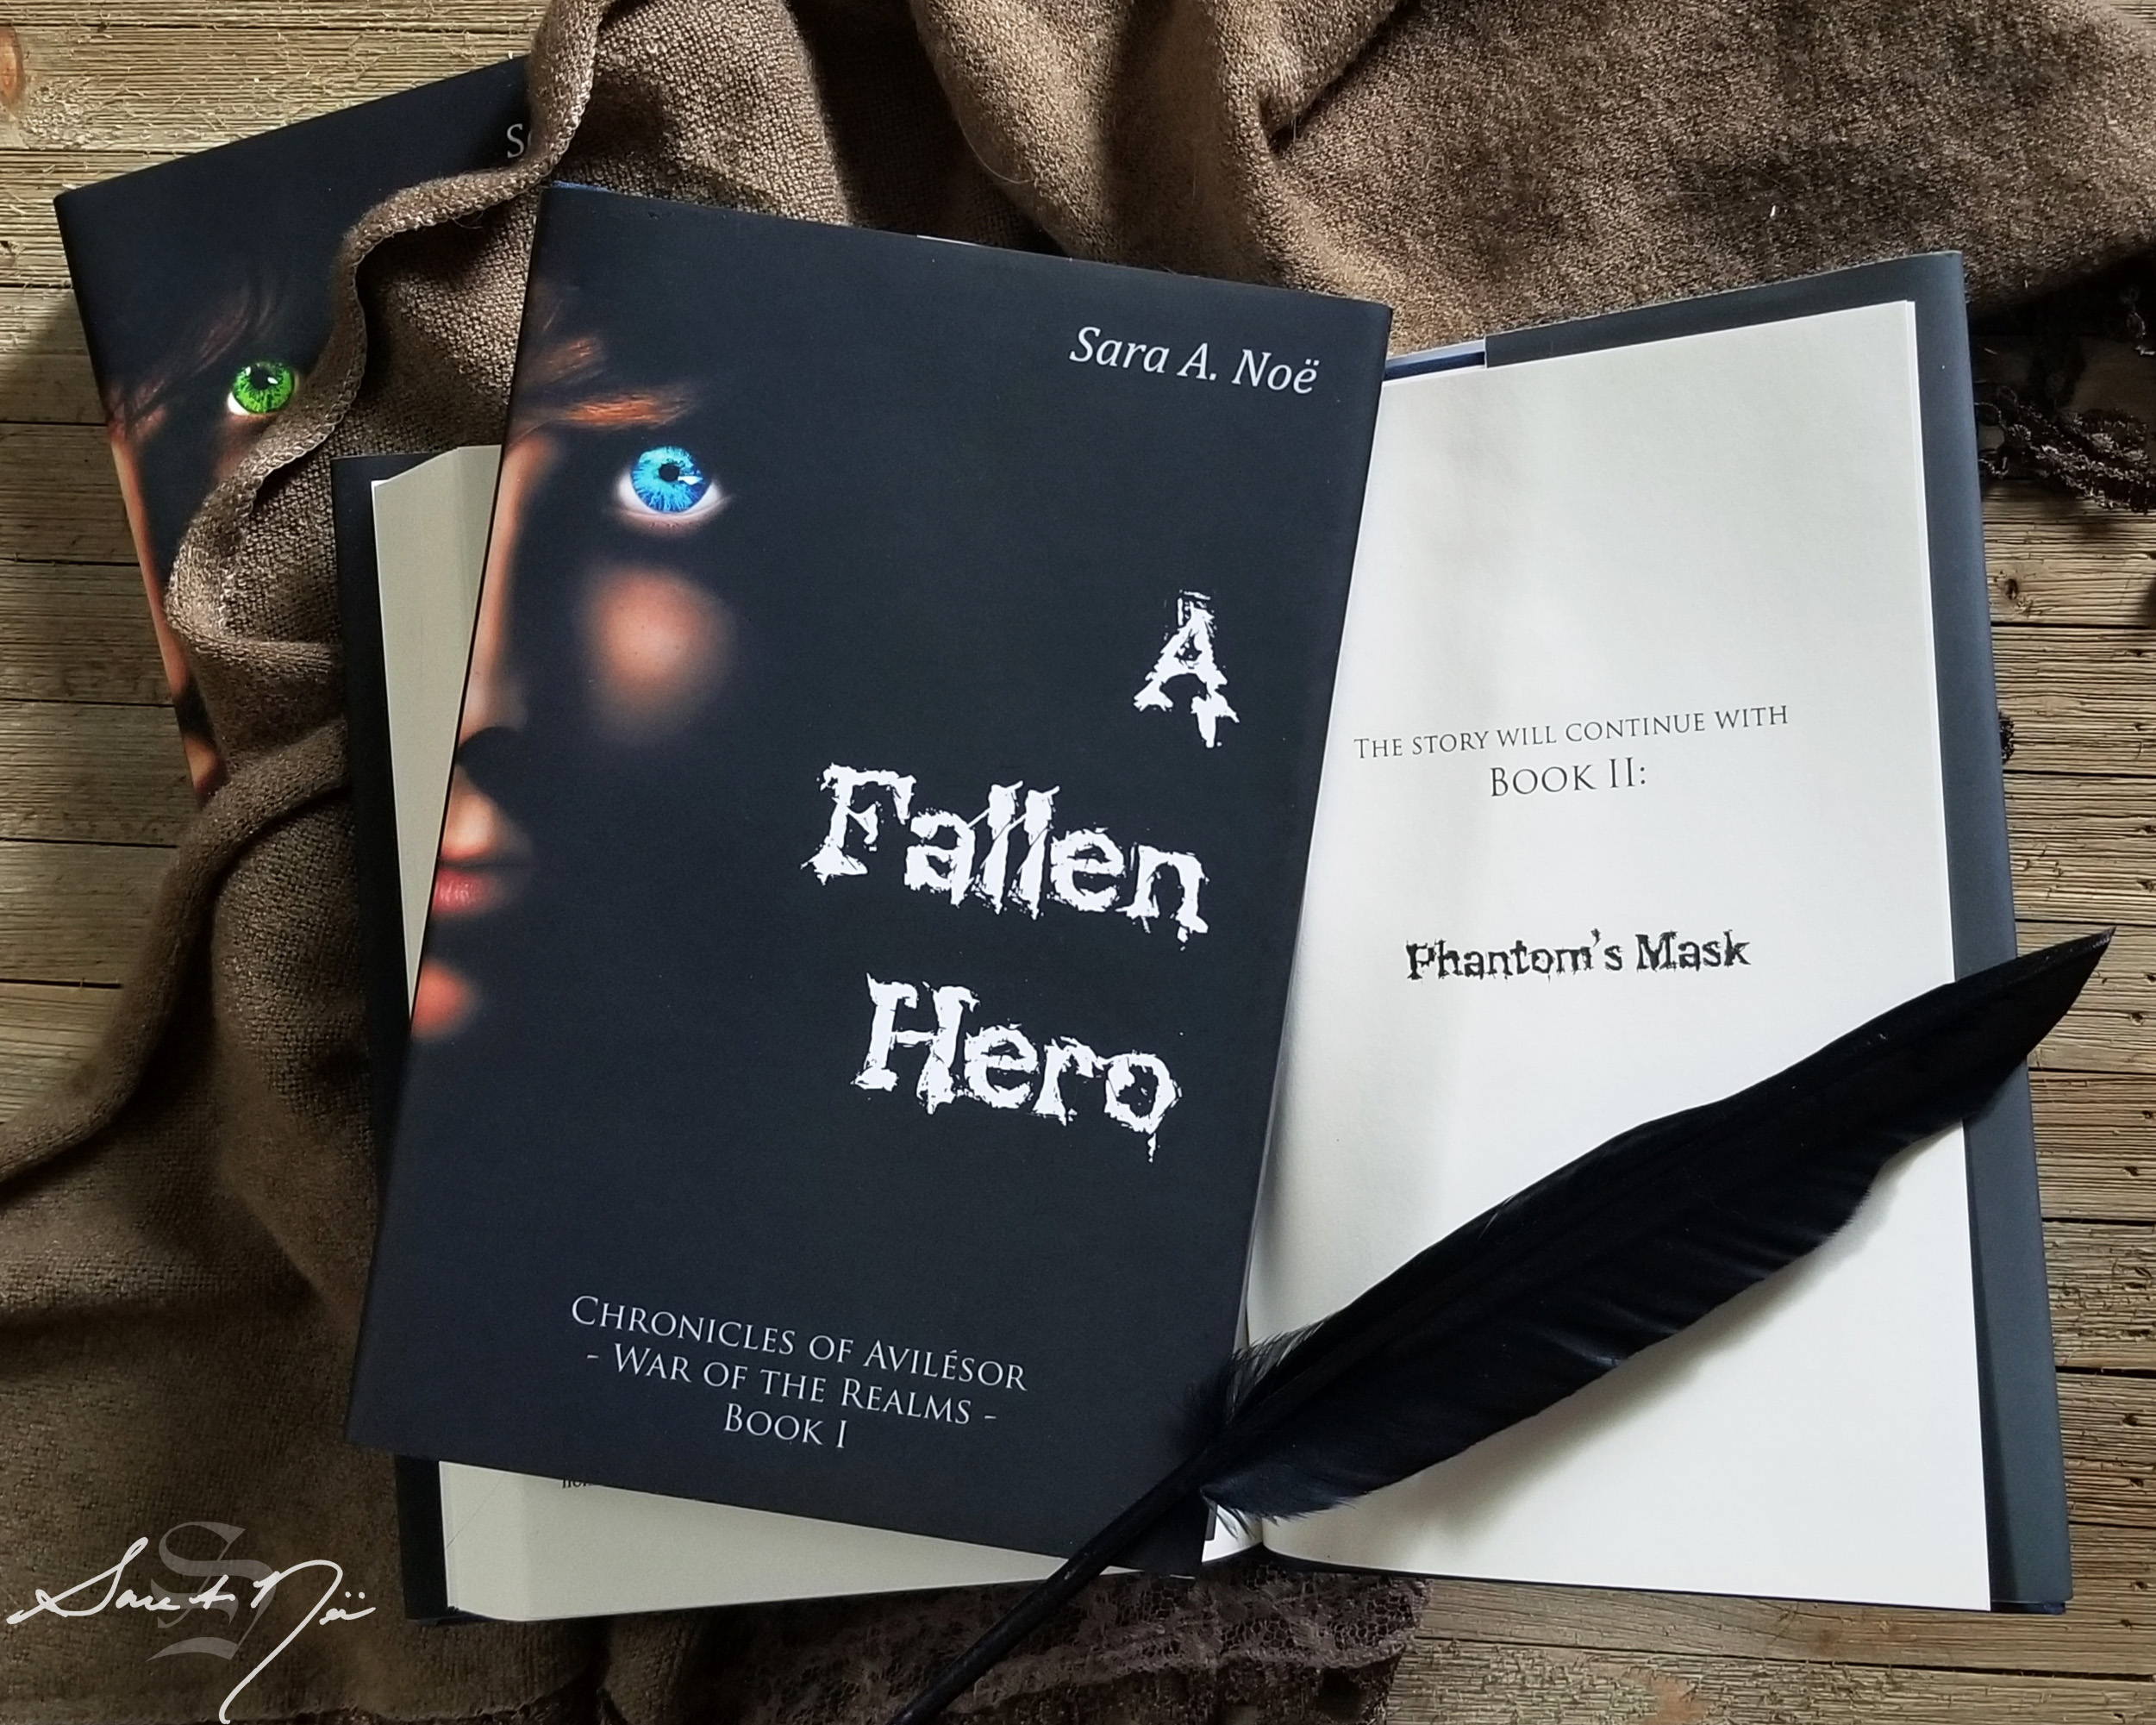 A Fallen Hero and Phantom's Mask by Sara A. Noe